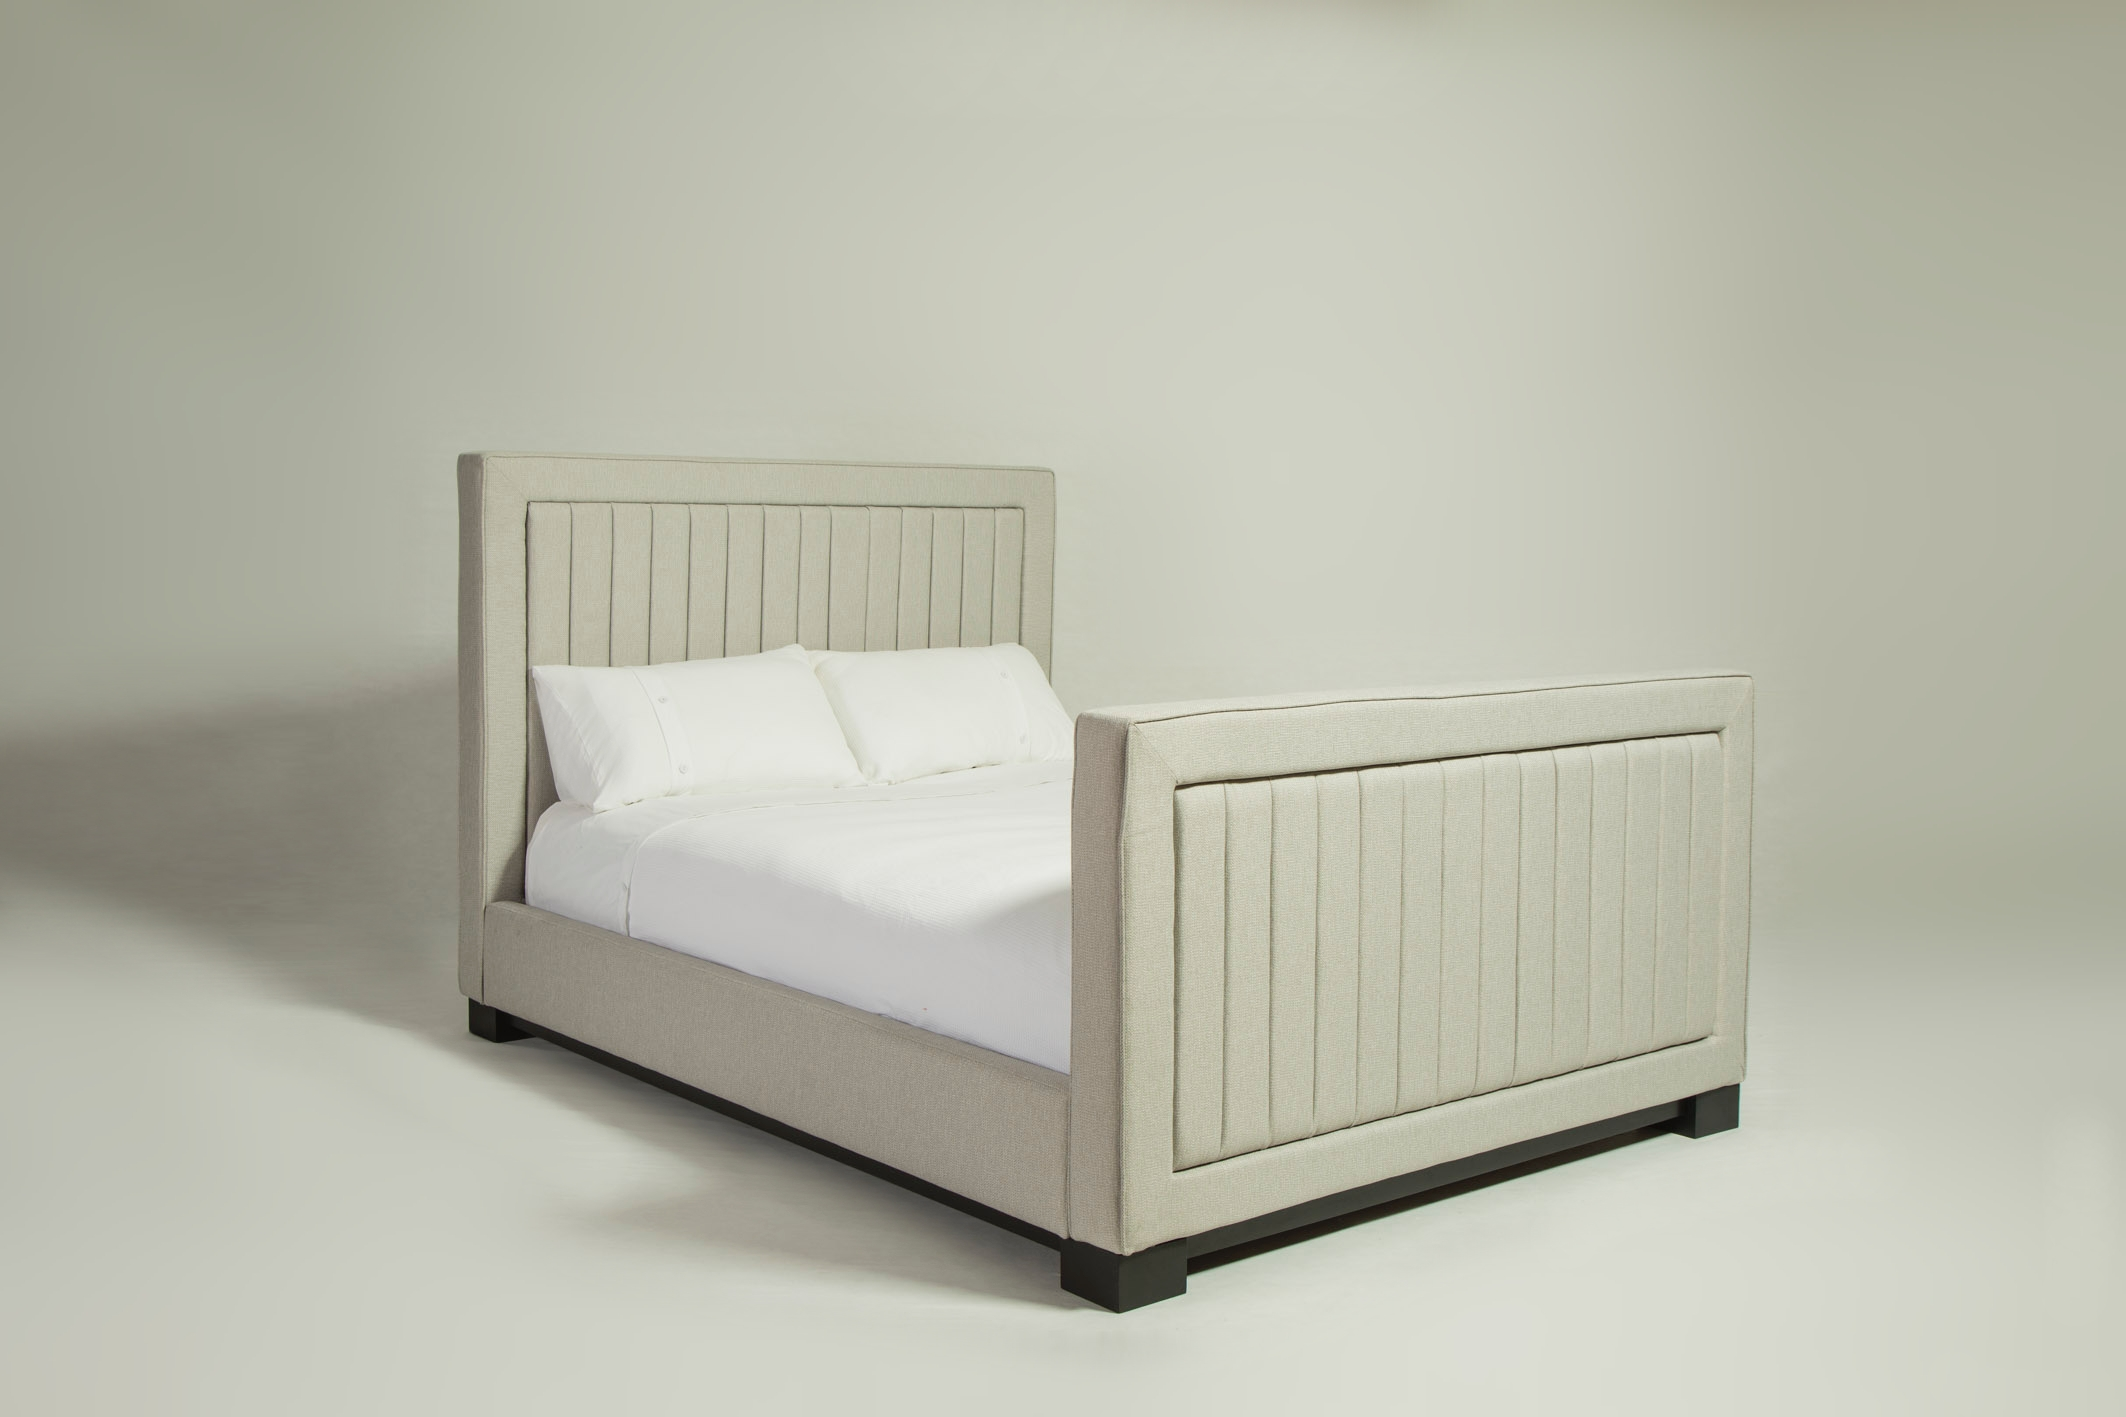 lux_channelled_bed_02.jpg